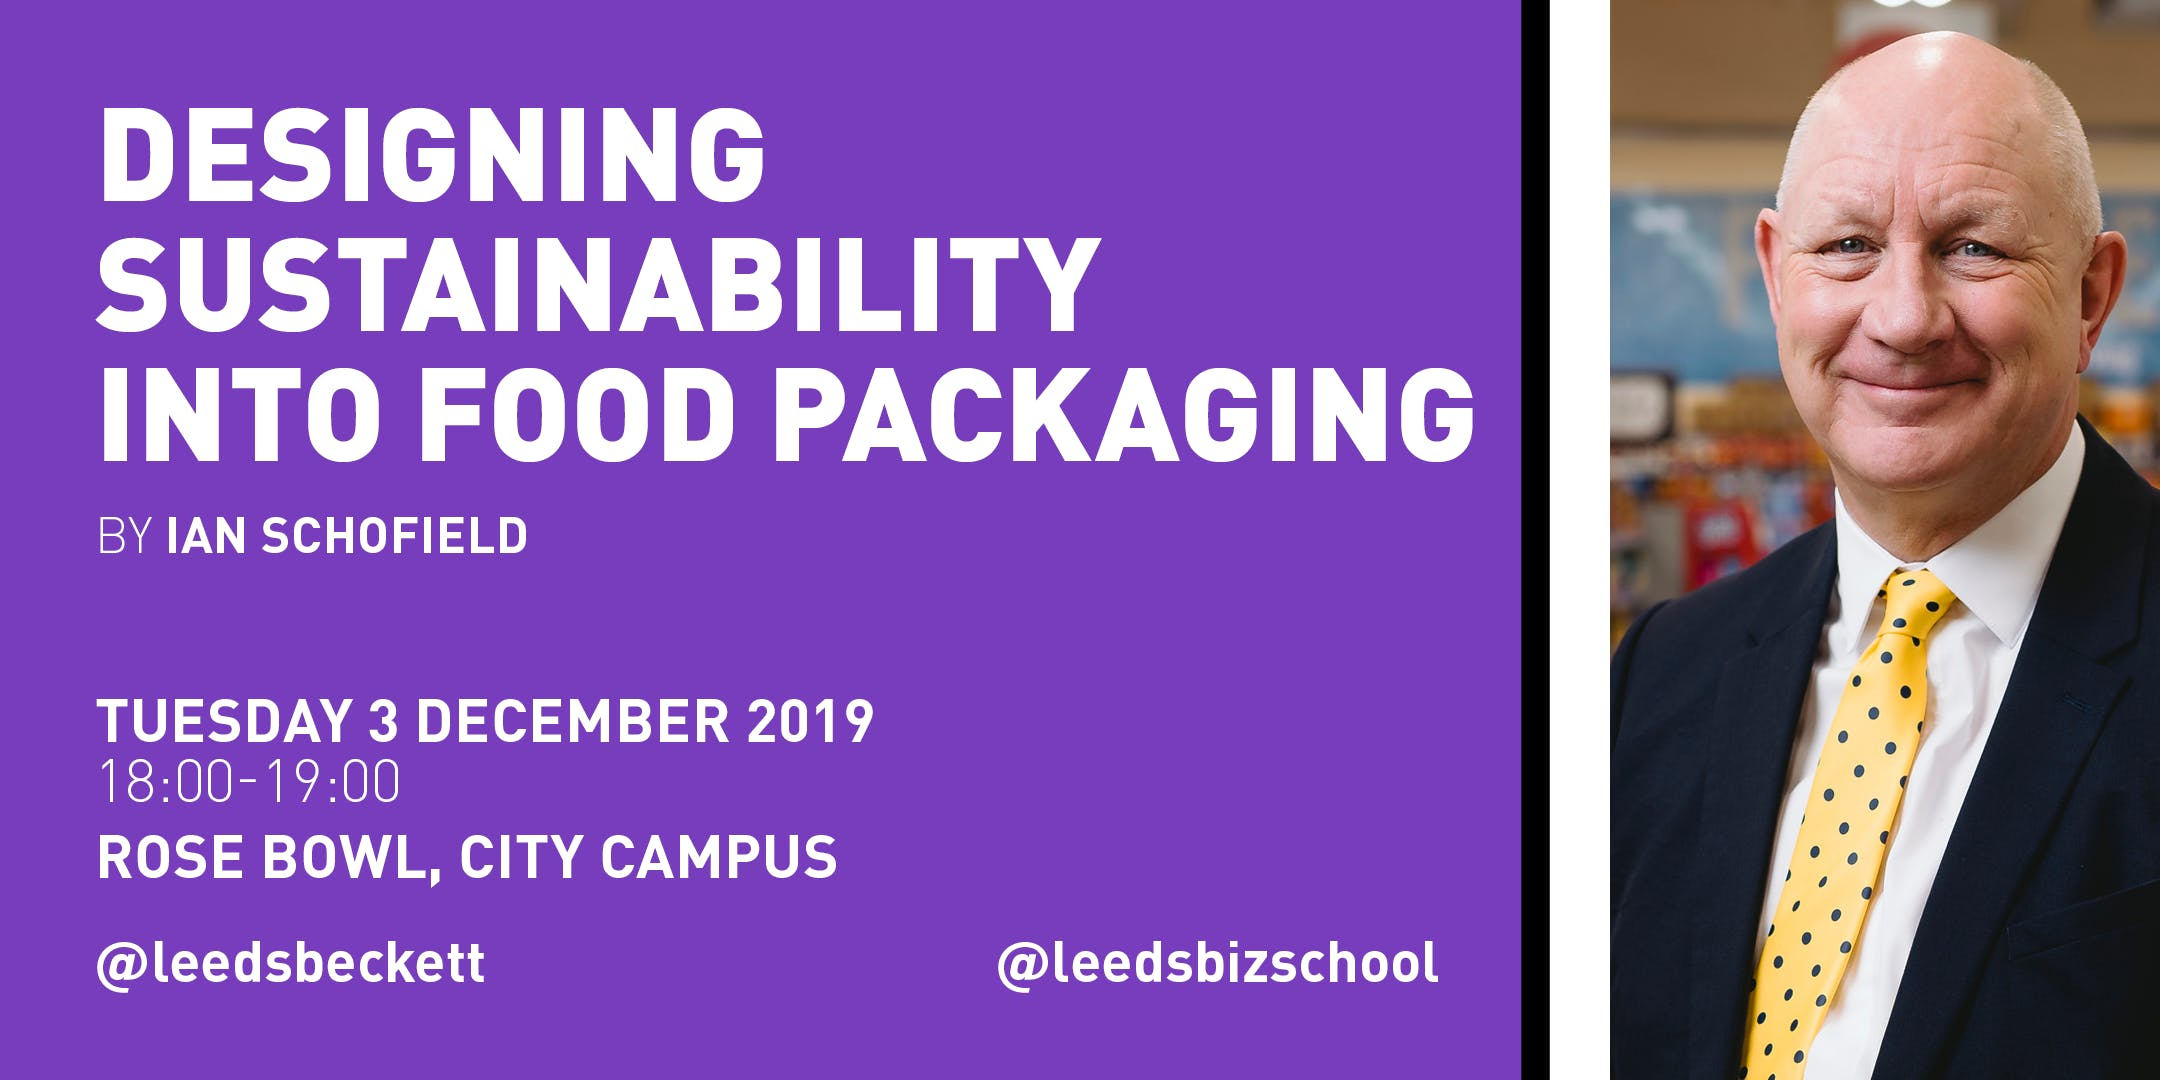 Designing sustainability in to food packaging by Ian Schofield